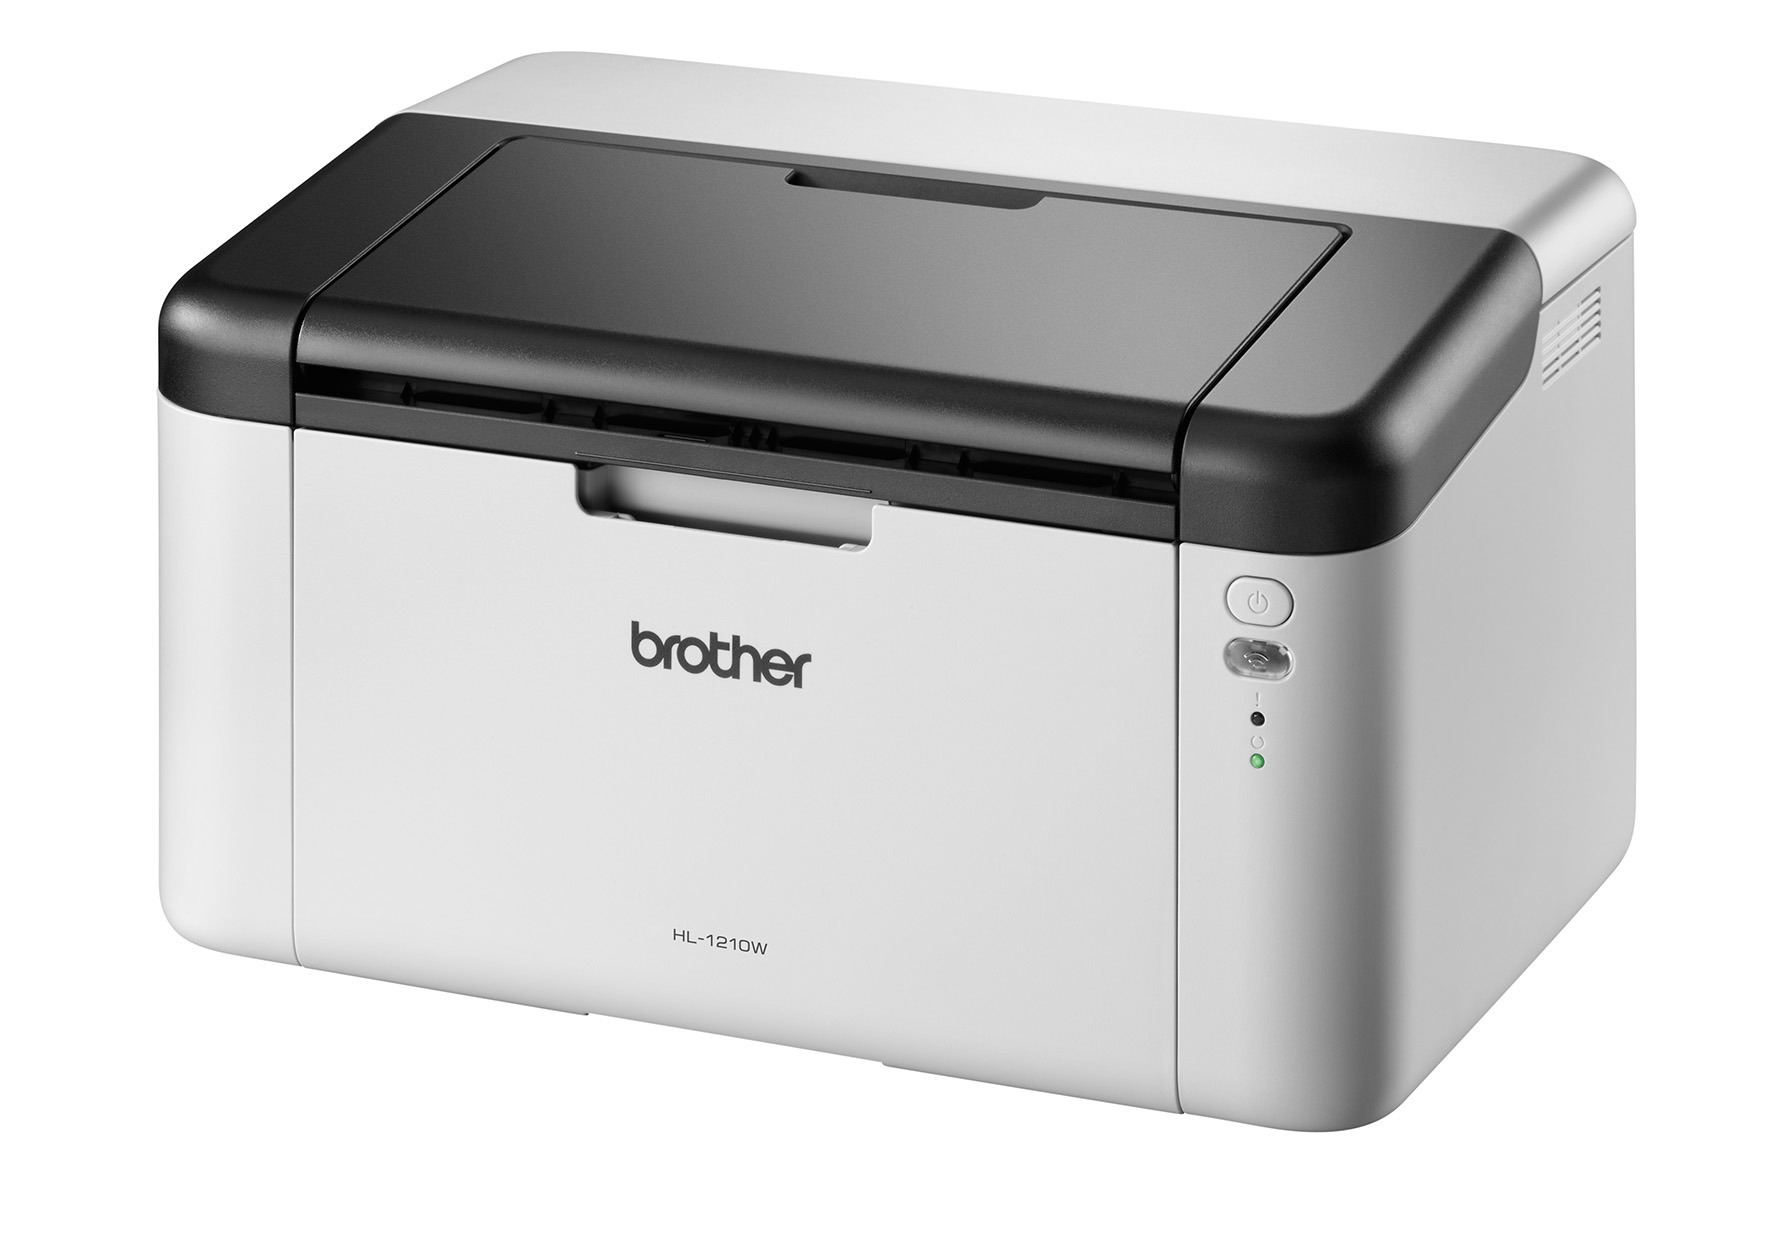 Brother HL-1210W 2400 x 600DPI A4 Wi-Fi laser printer